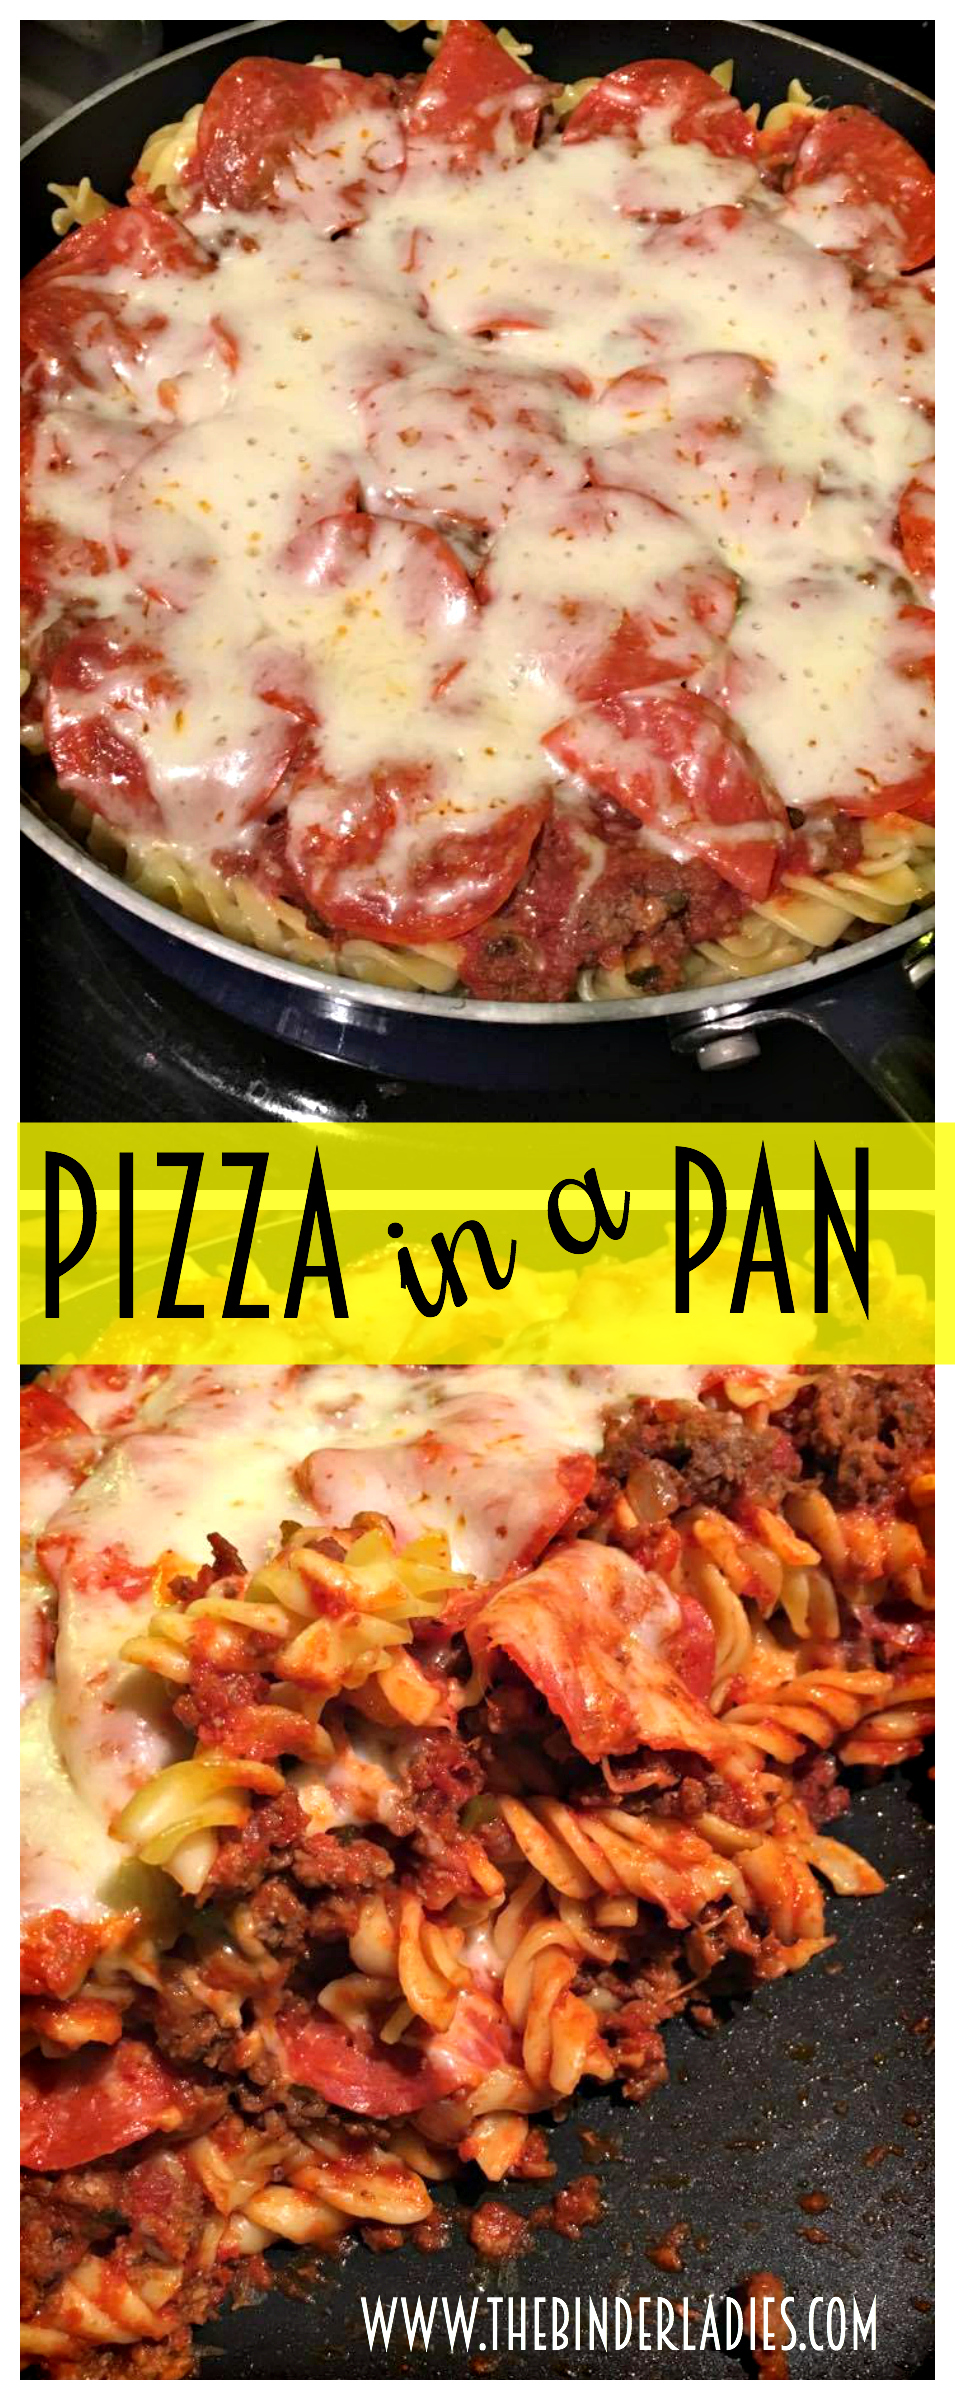 Pizza in a Pan Recipe